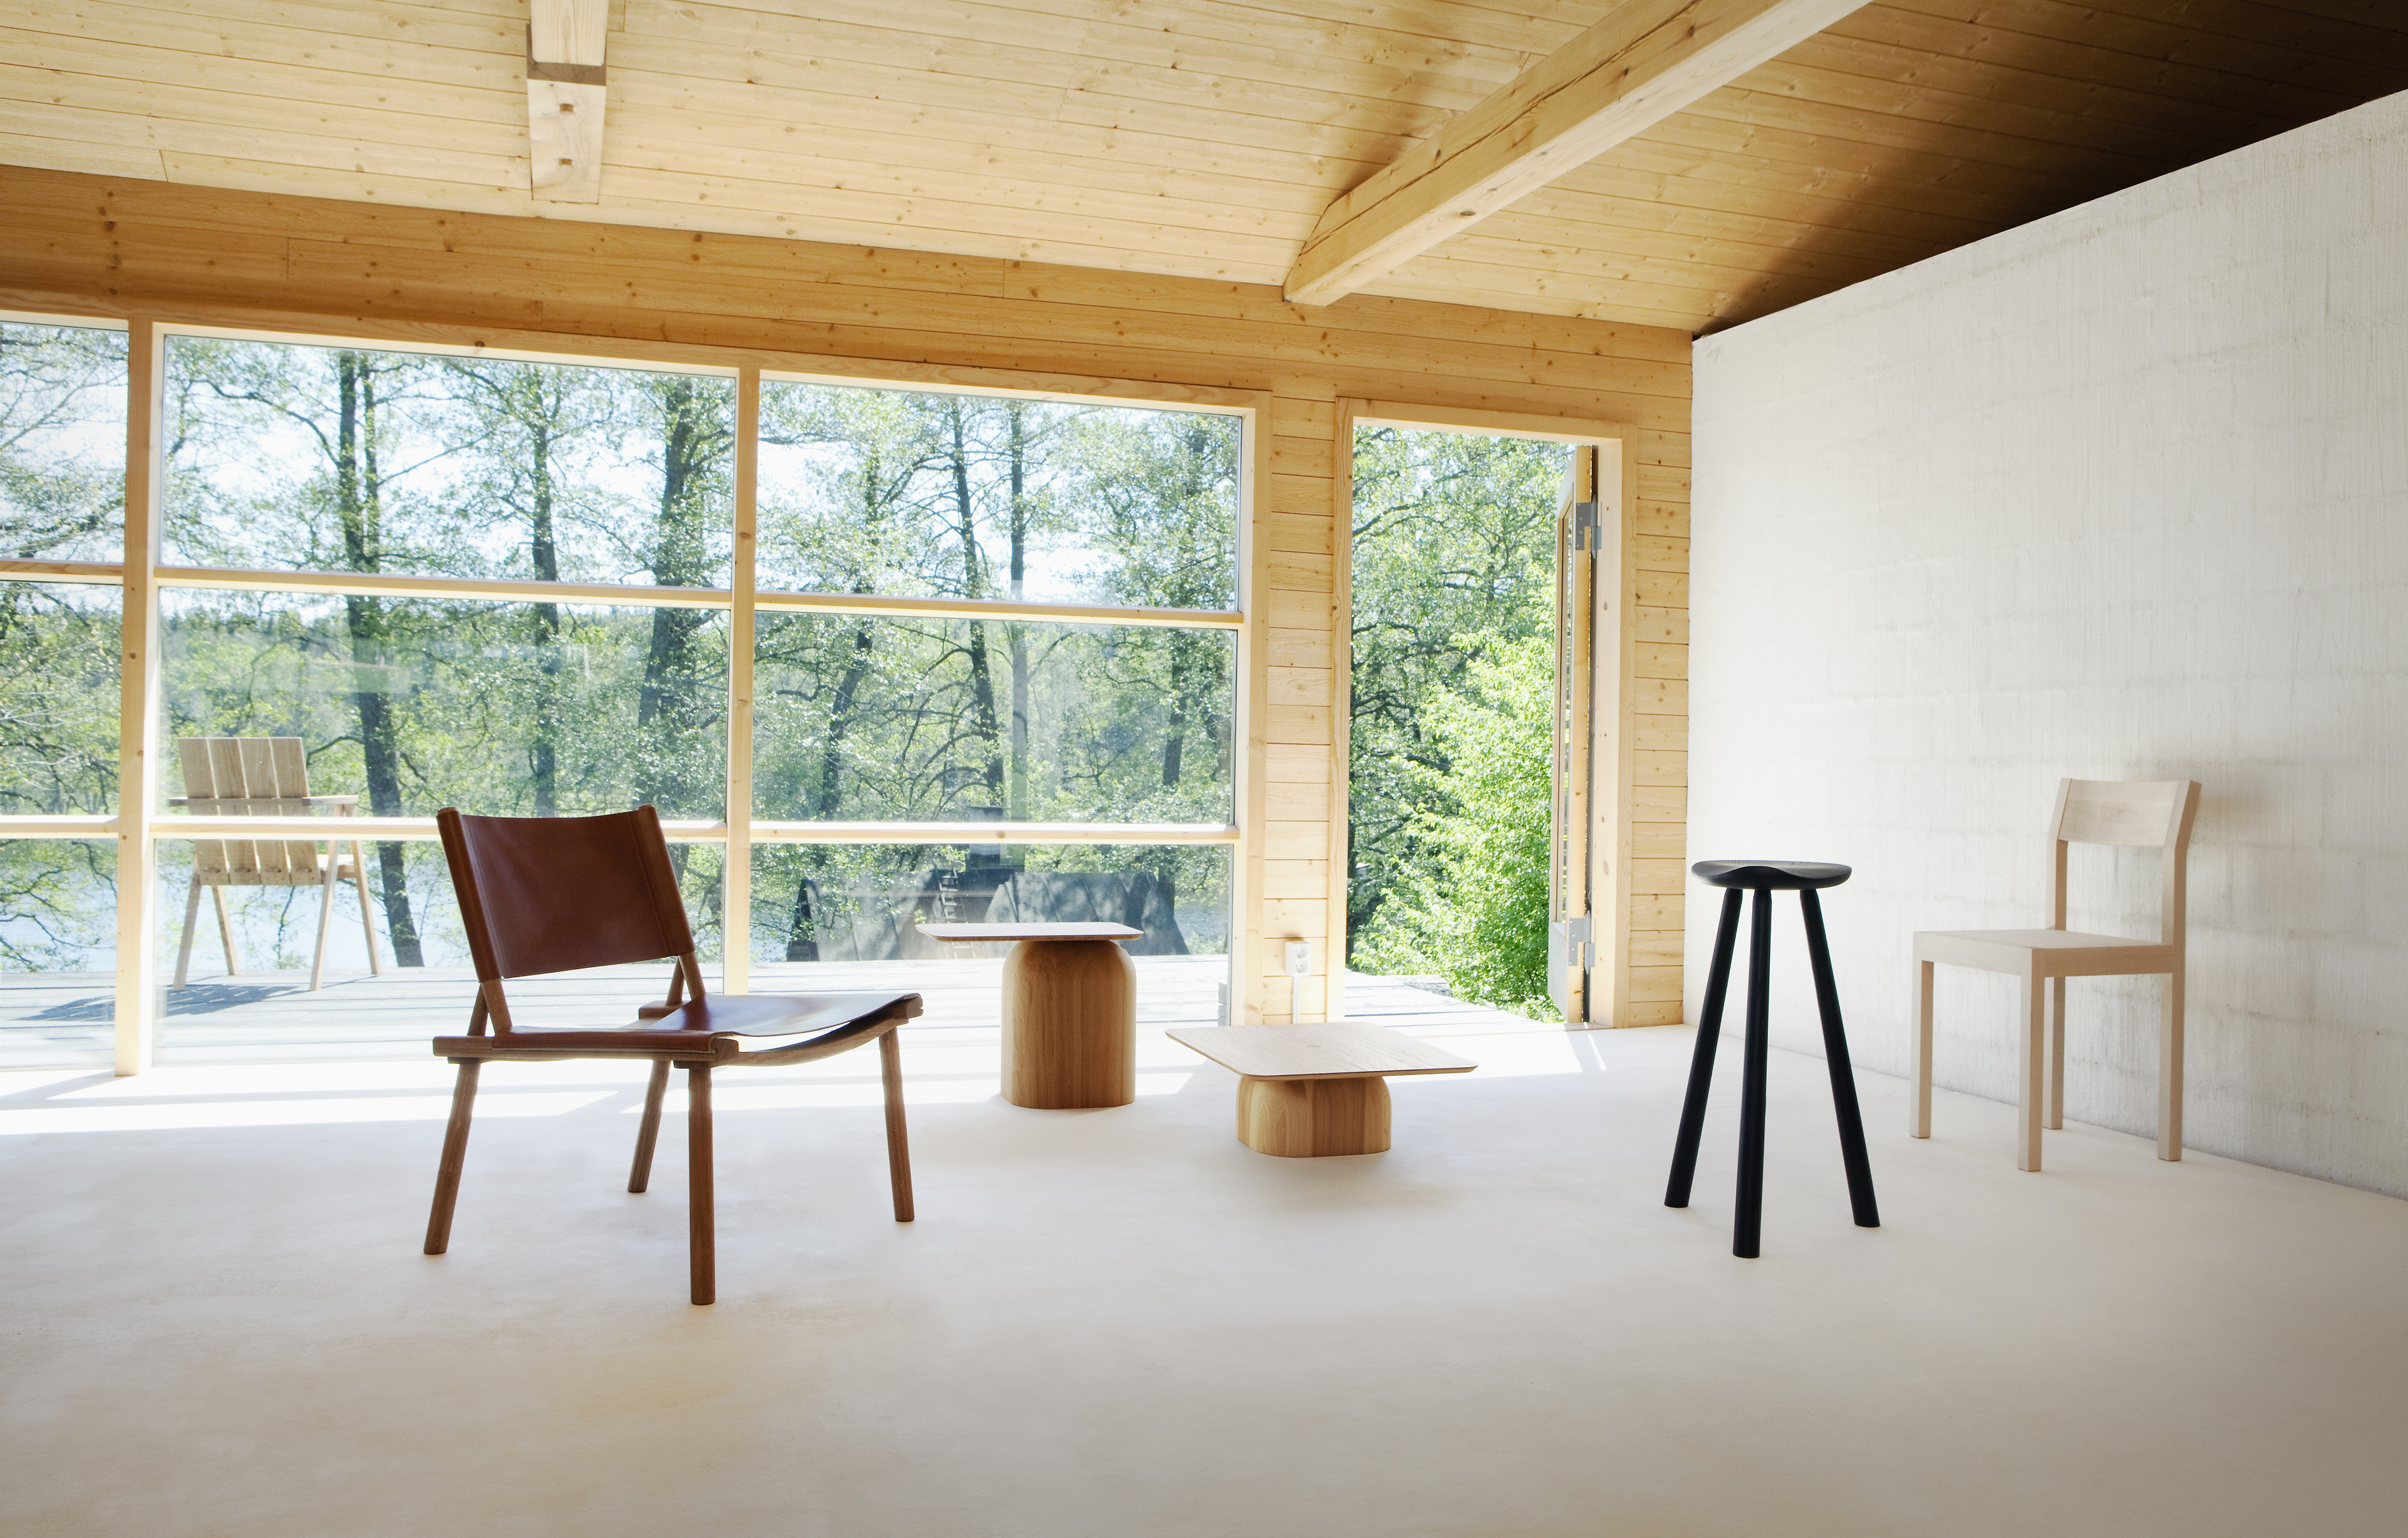 High-quality craftsmanship, contemporary design and sustainability come together with Nikari.